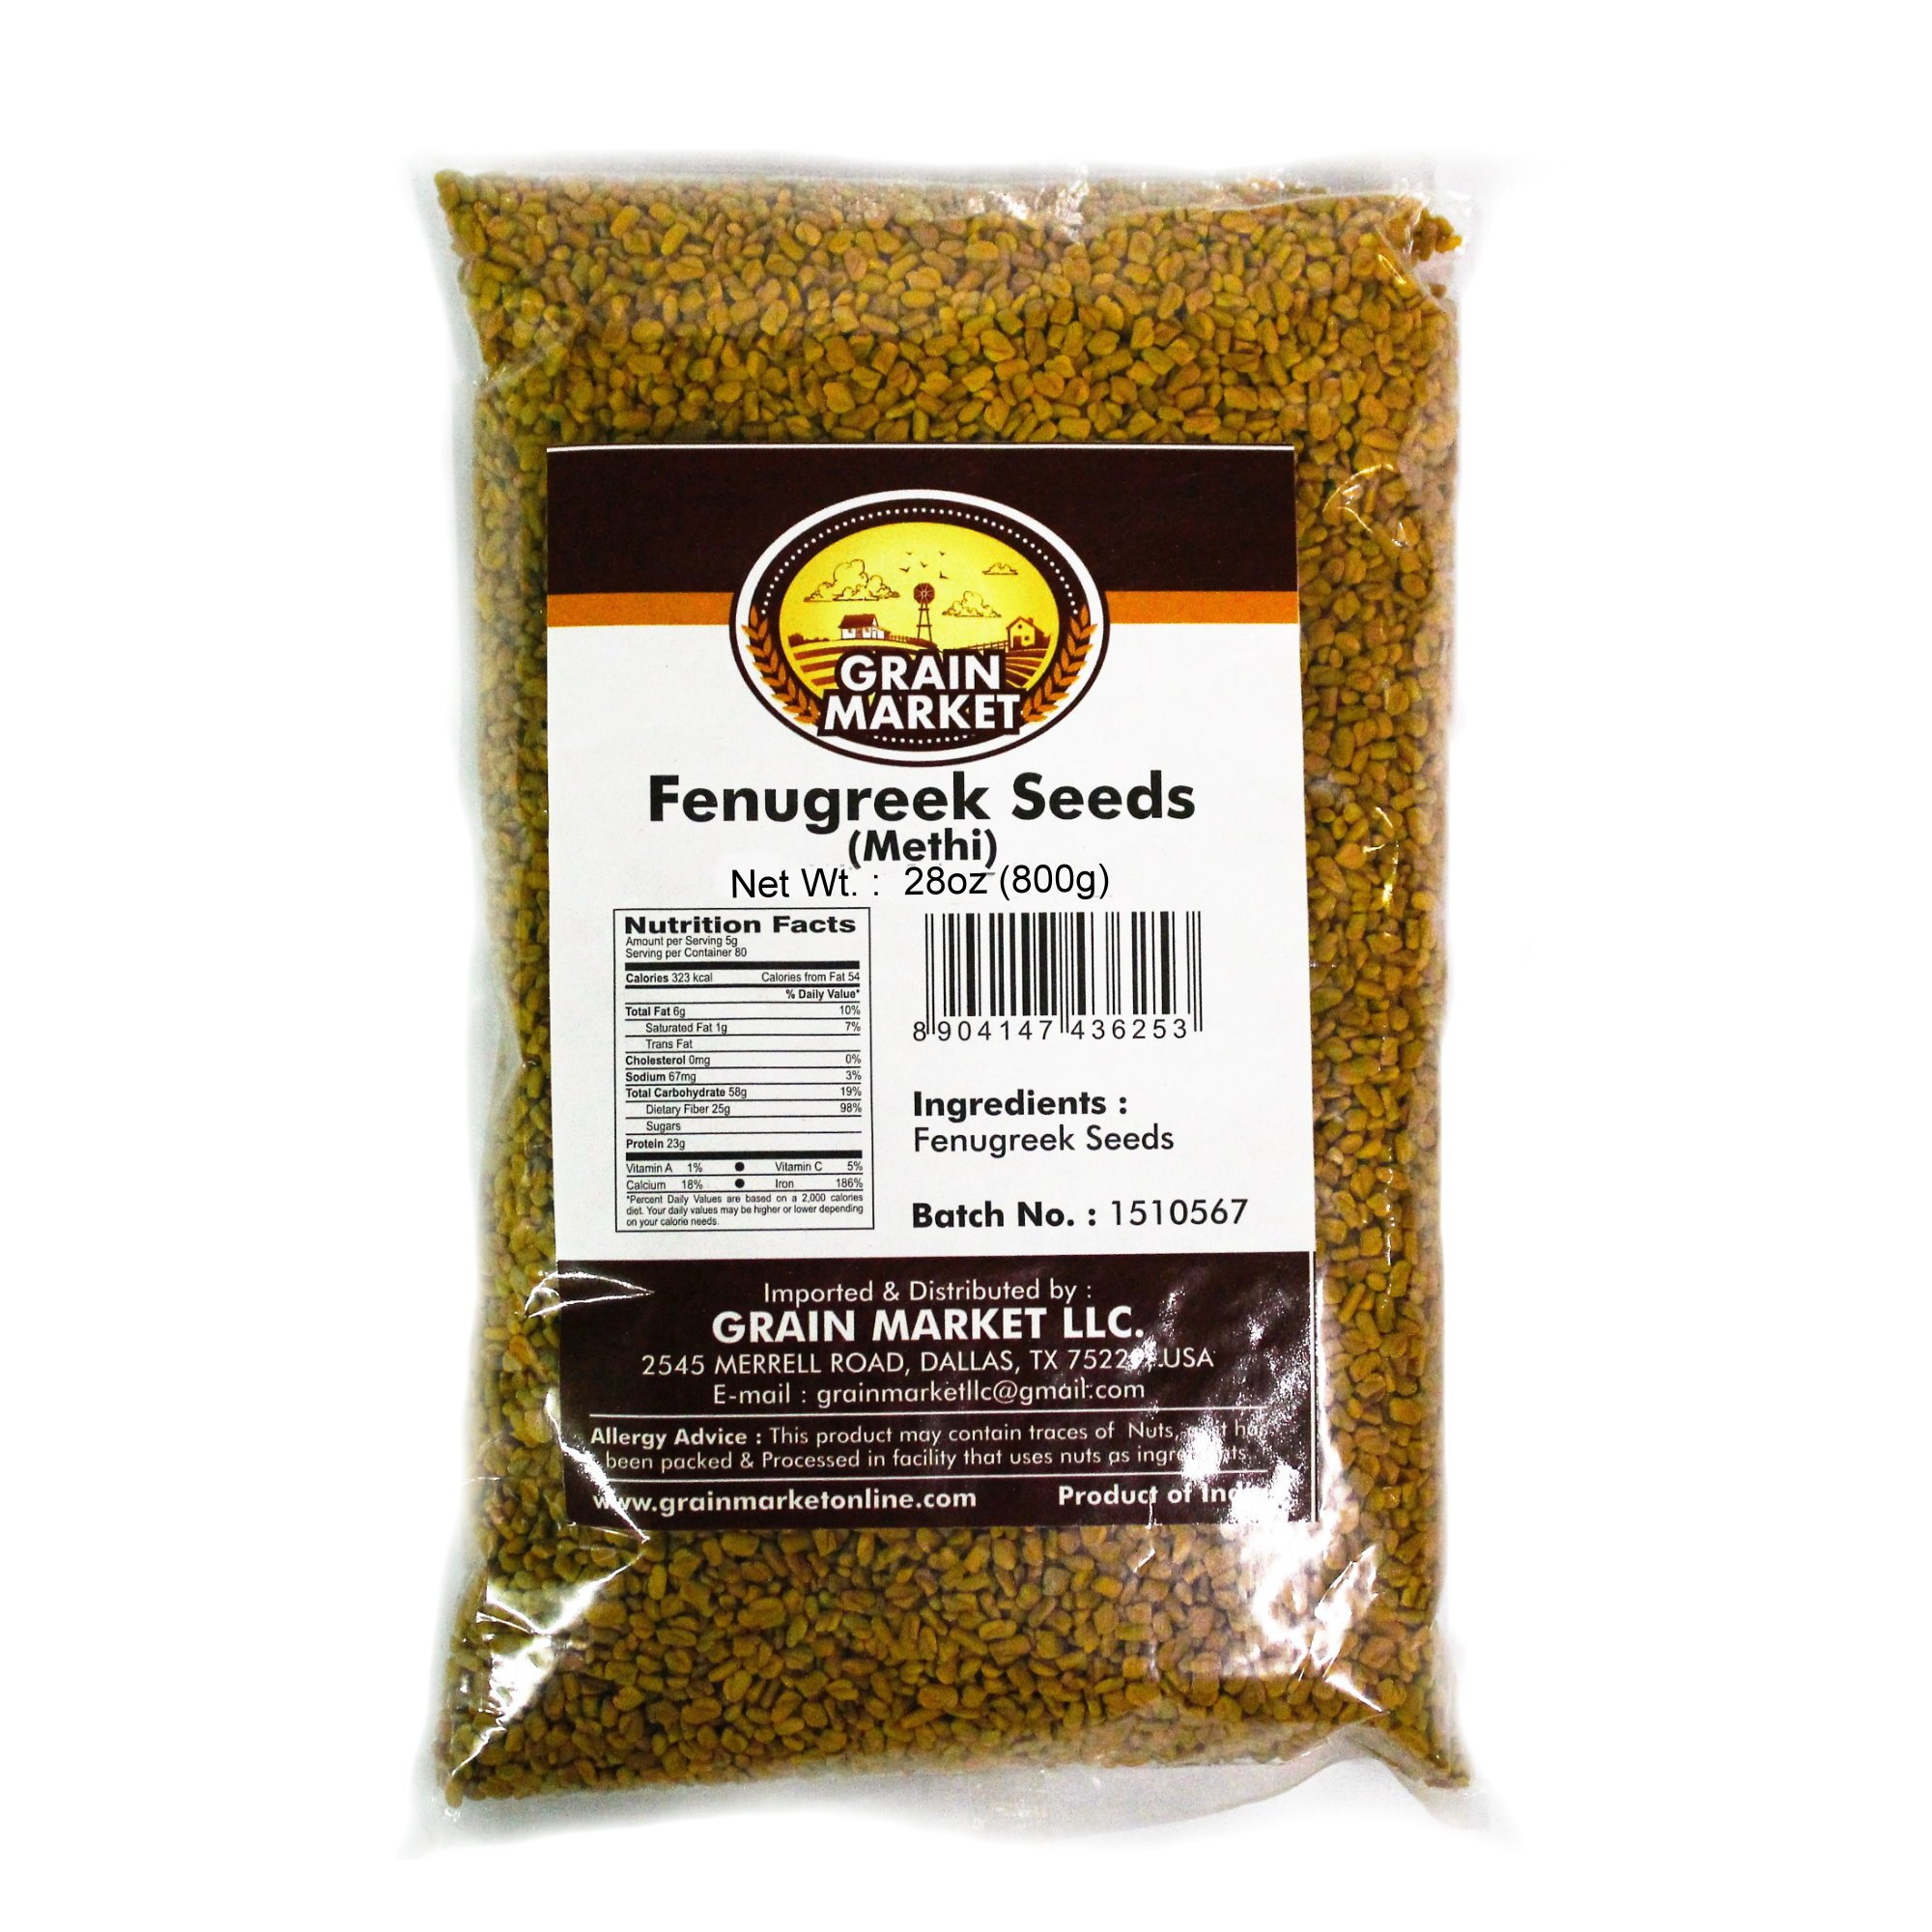 Grain Market Fenugreek Seeds 800g by Grain Market (Image #1)